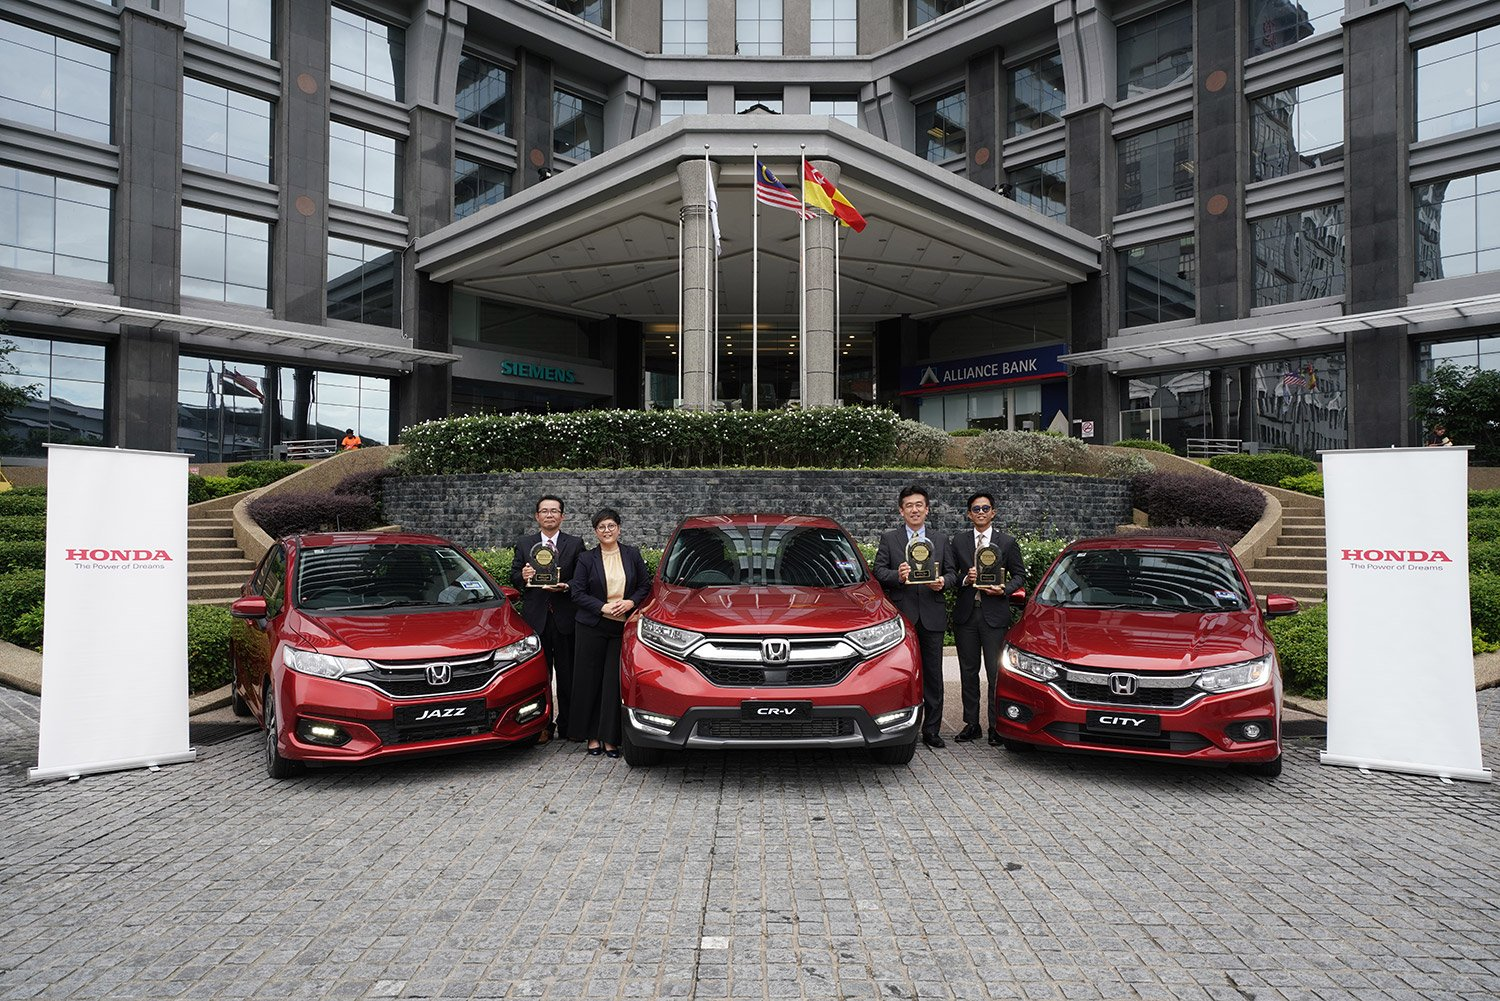 HONDA JAZZ, CITY AND CR-V RANK TOP IN J.D. POWER 2019 MALAYSIA INITIAL QUALITY STUDY